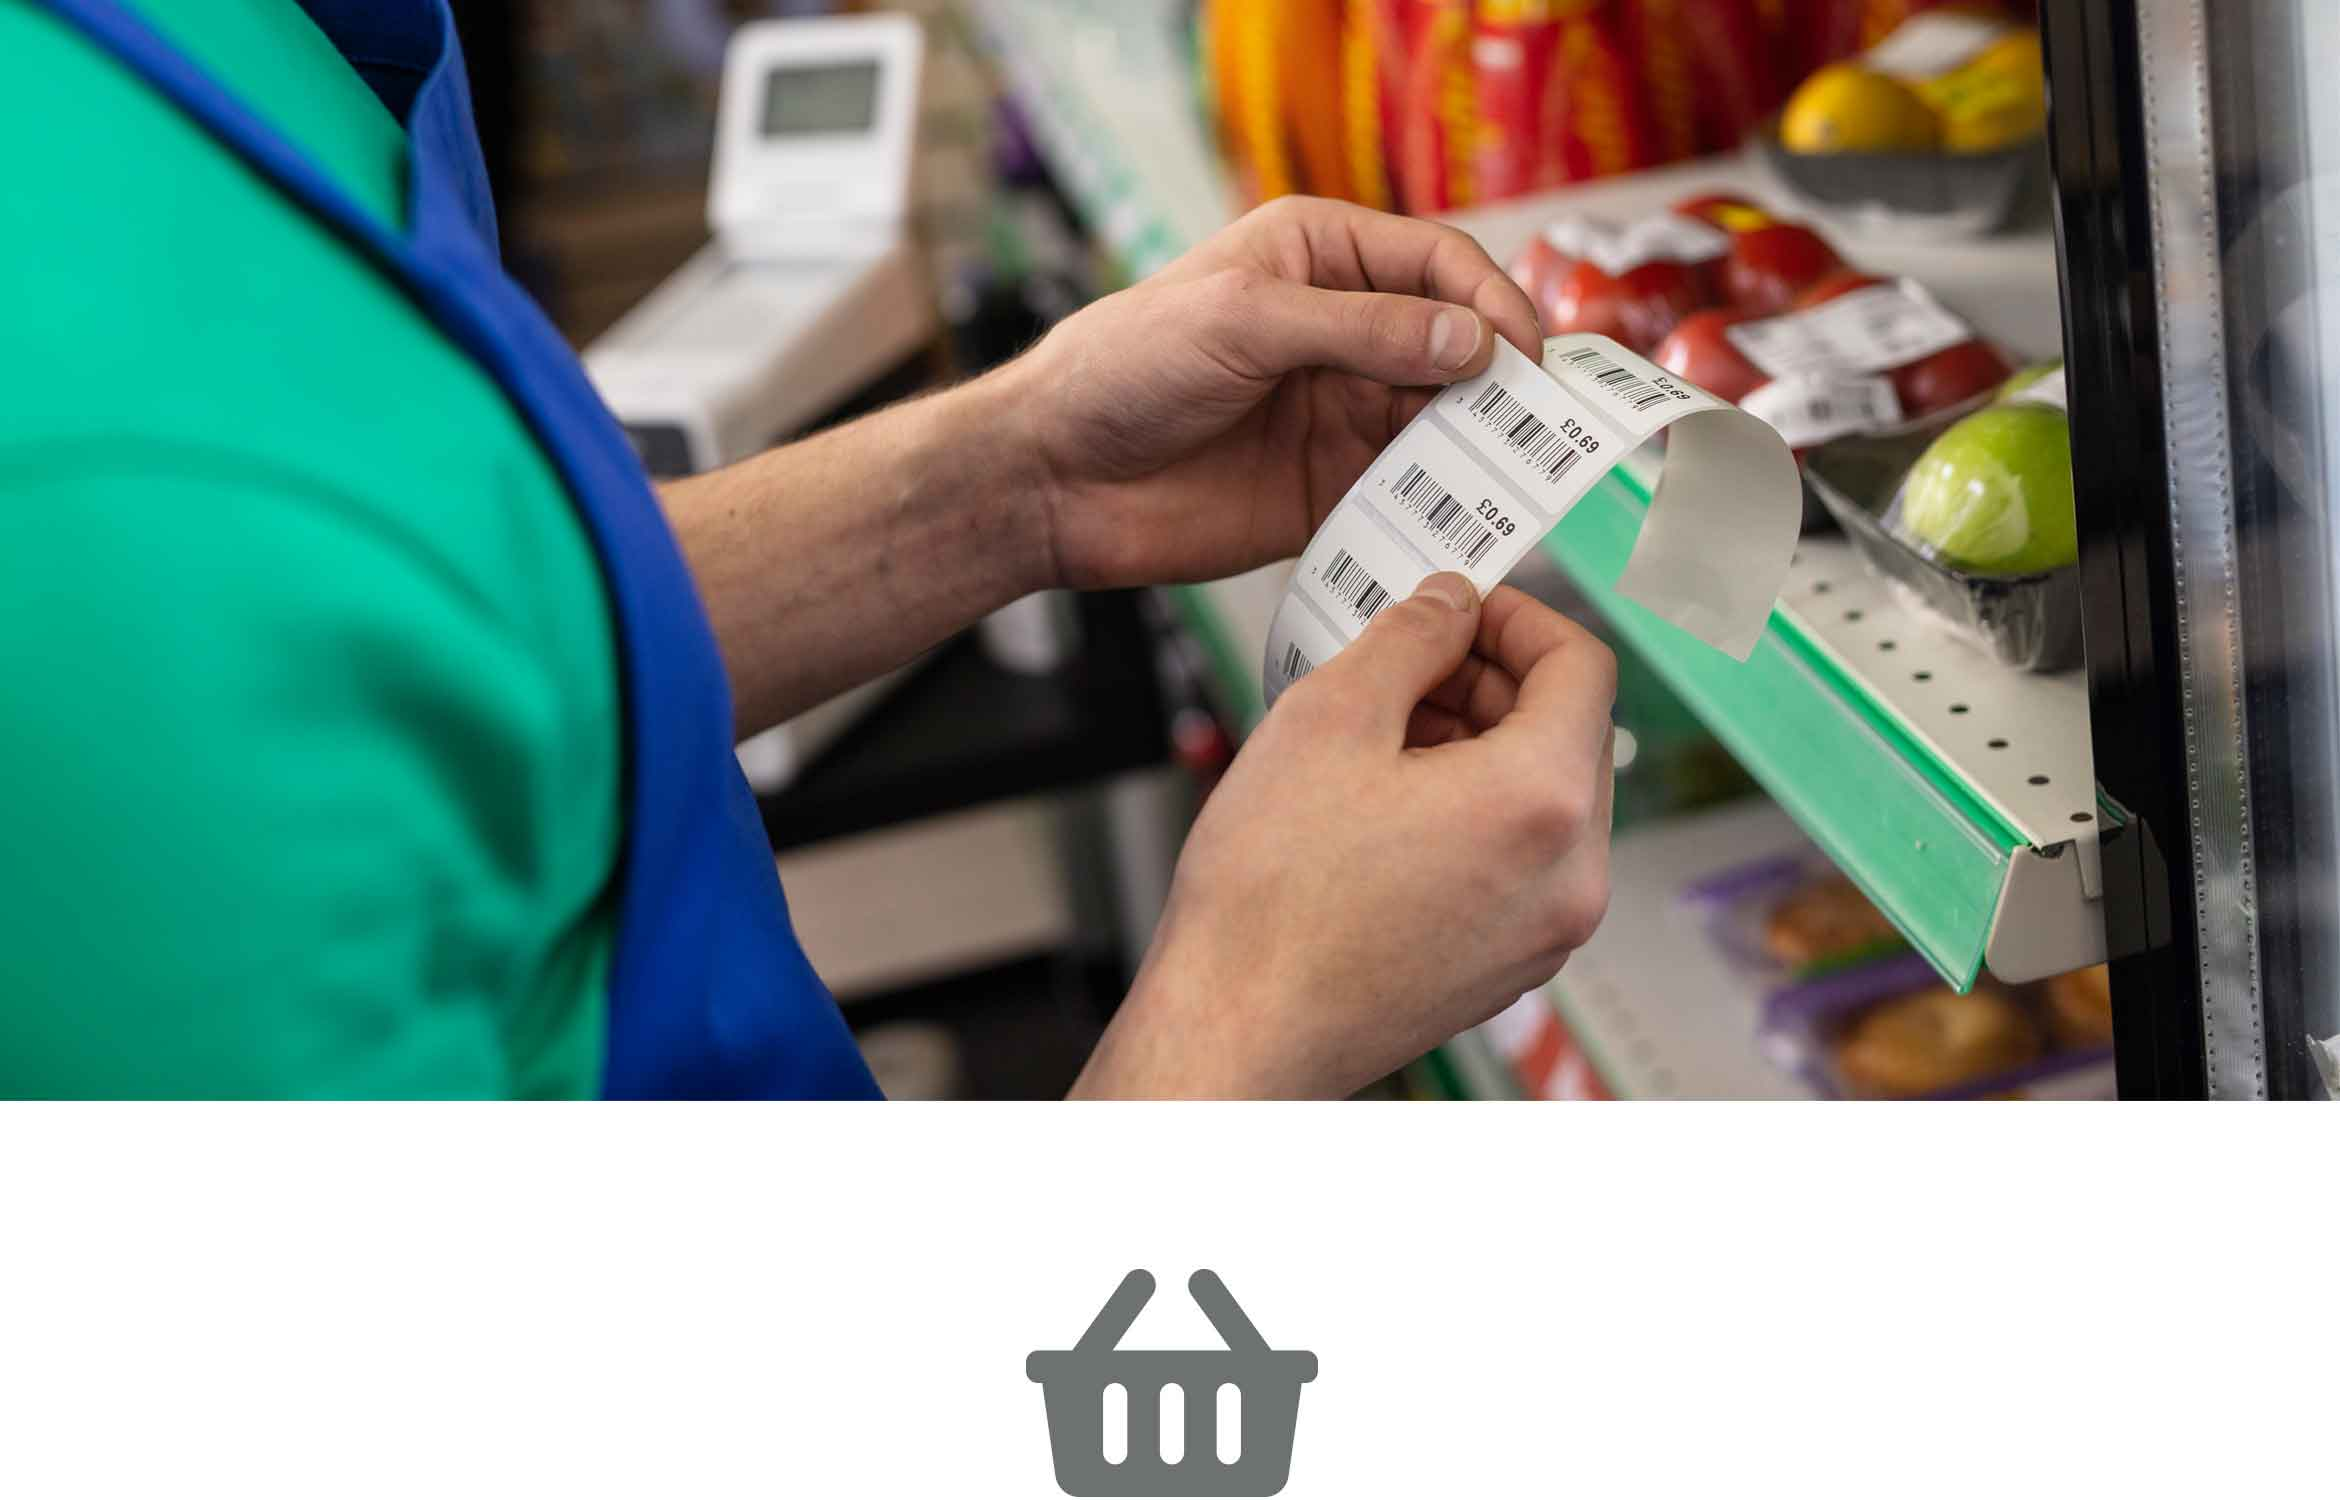 A supermarket worker adding a shelf edge label